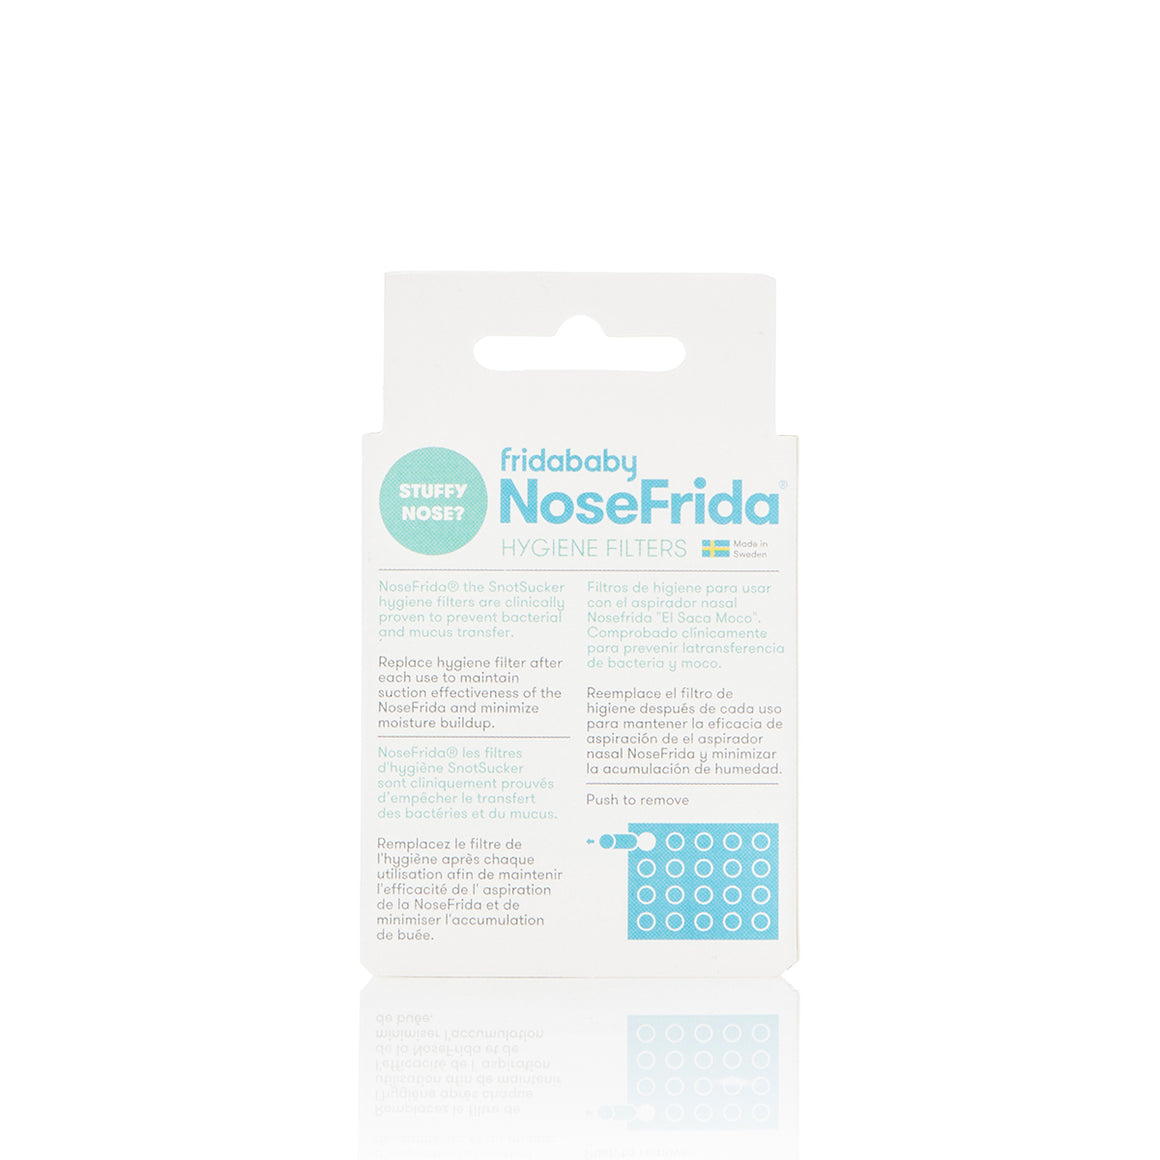 NoseFrida replacement hygienic filter package contains 20 filters